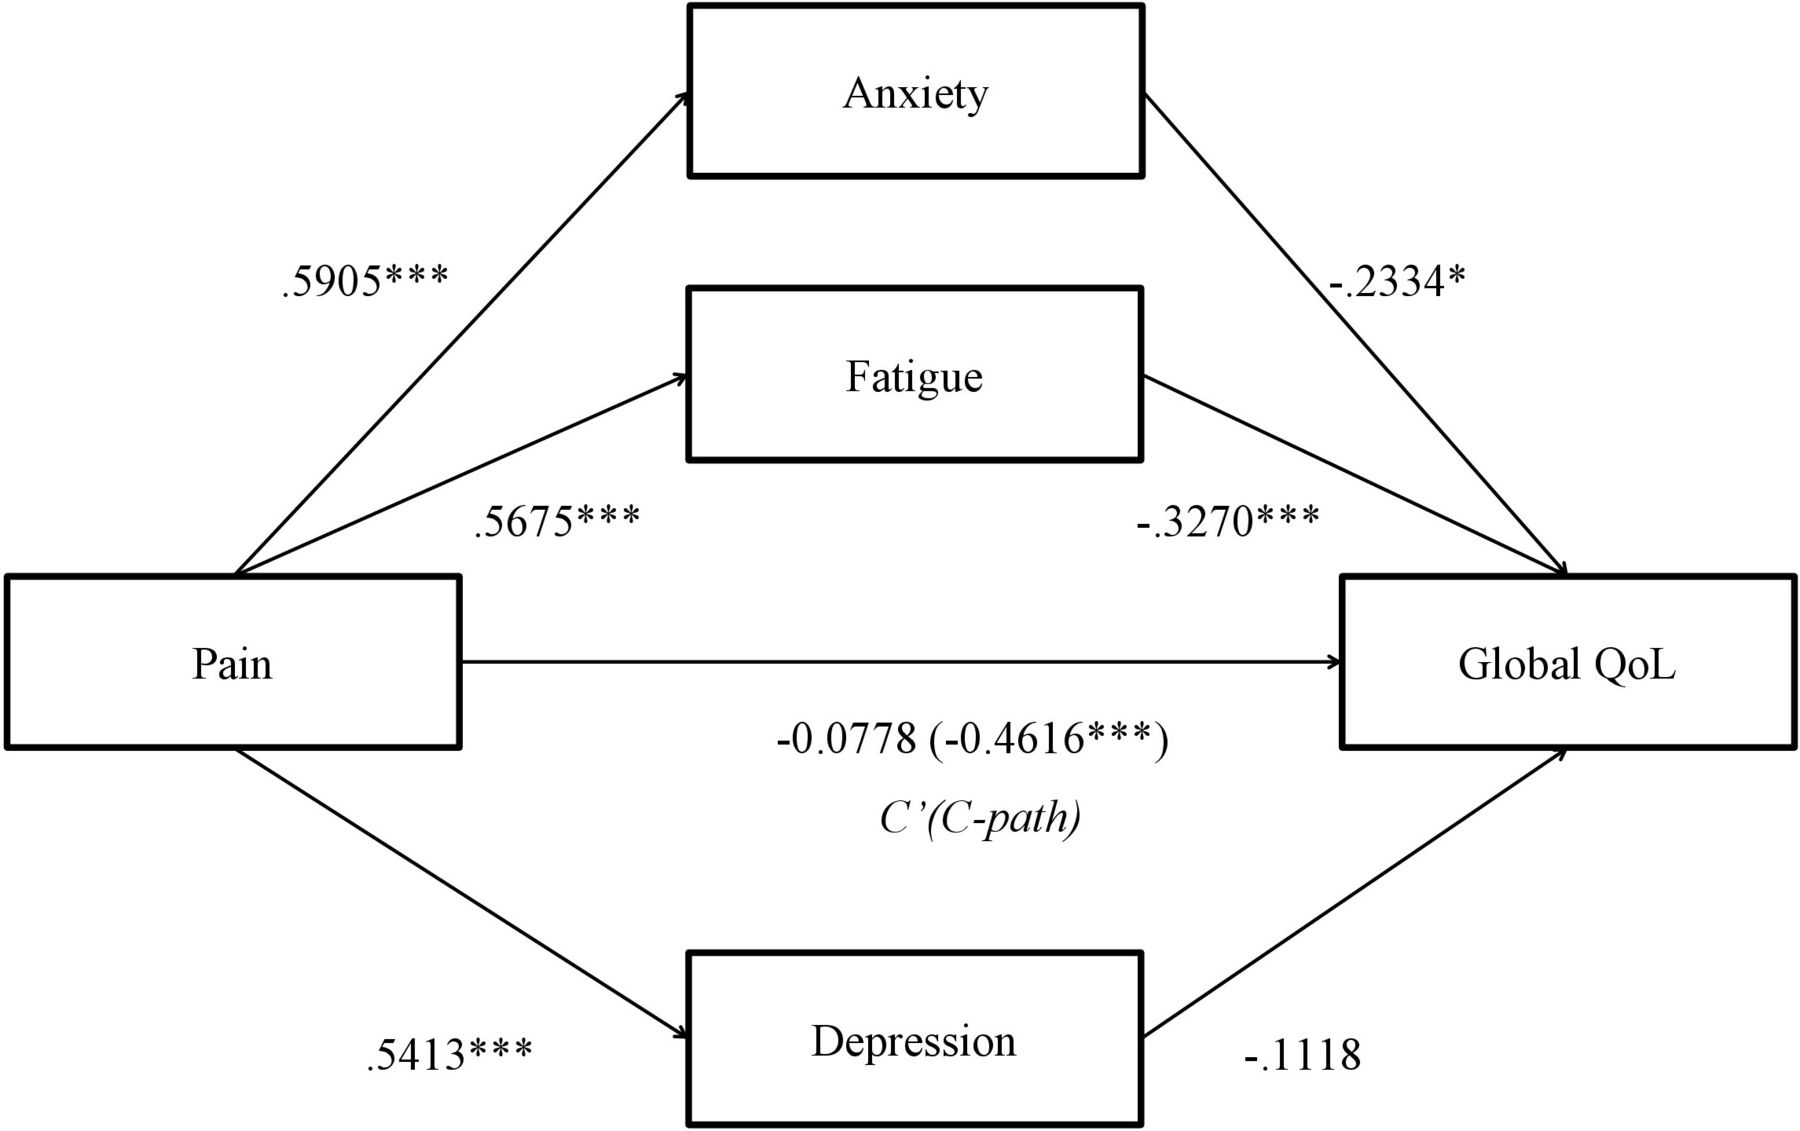 Parallel and serial mediation analysis between pain, anxiety